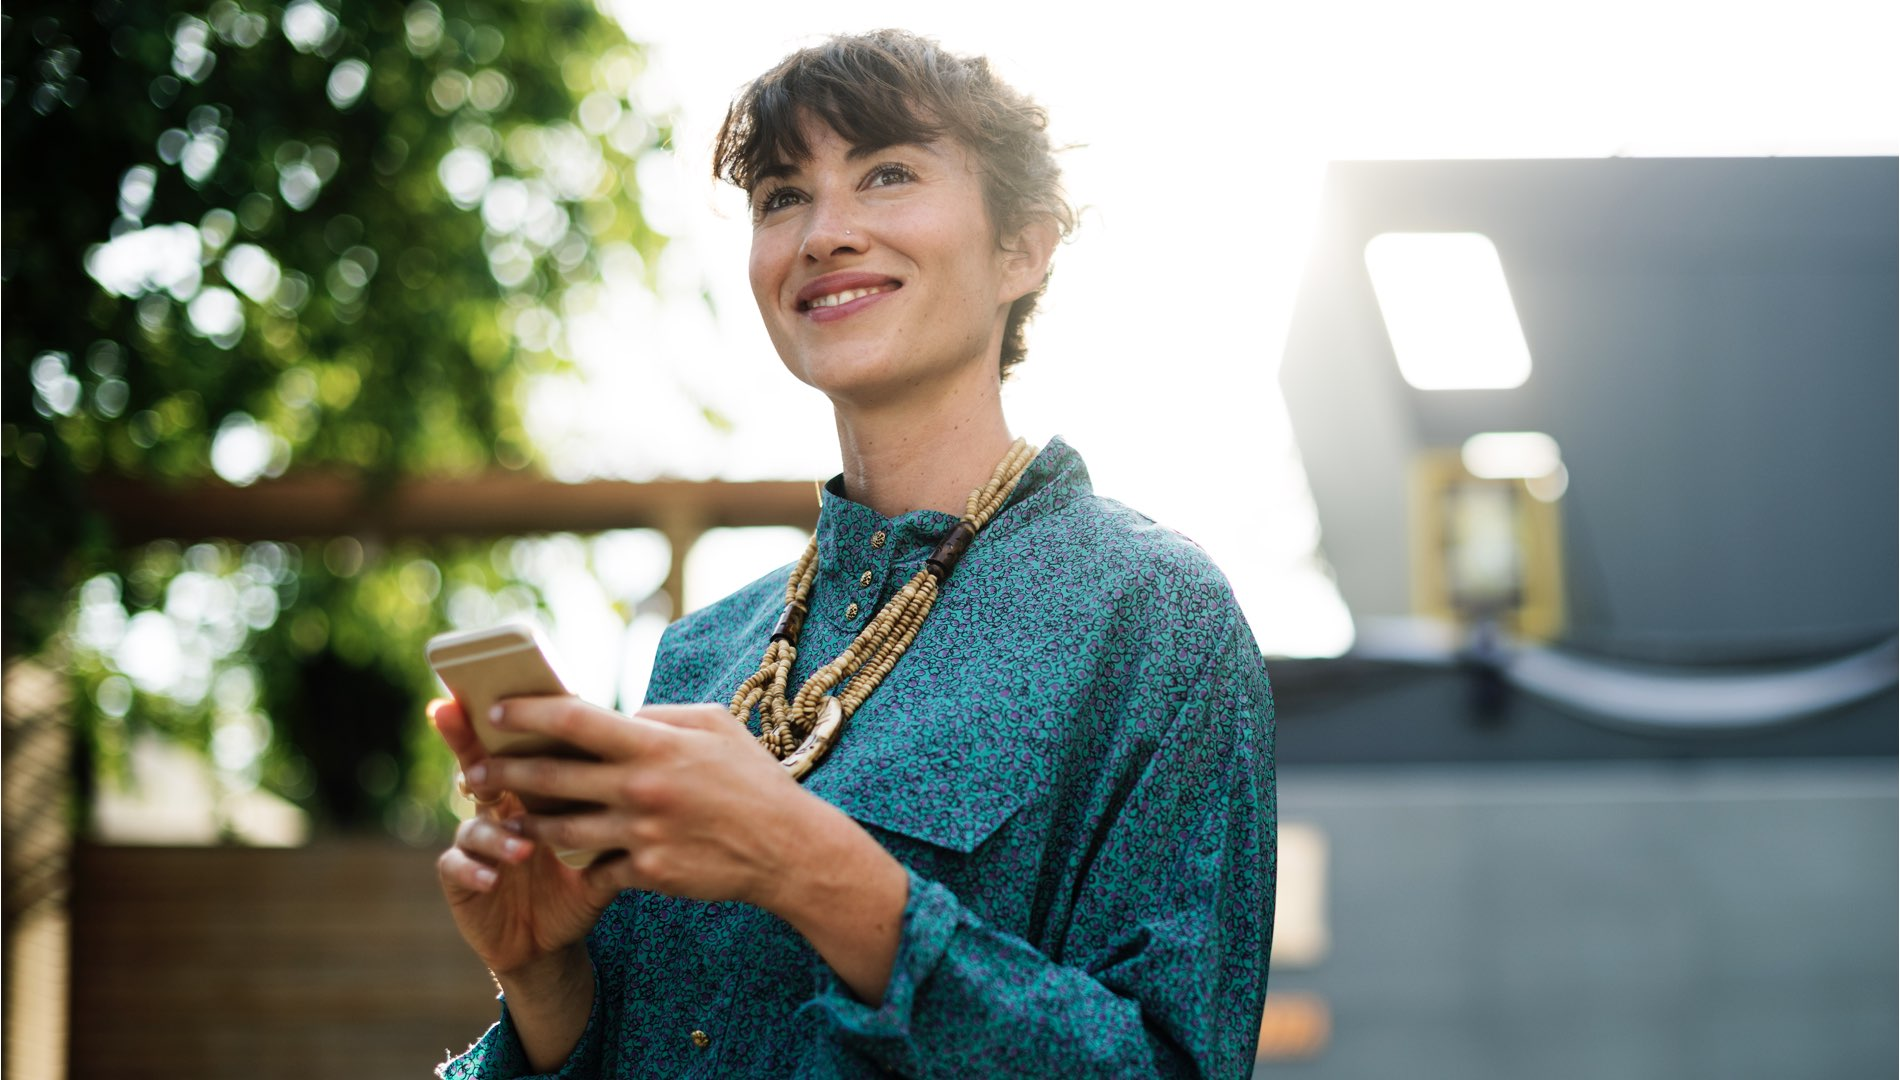 girl smiling with a smartphone